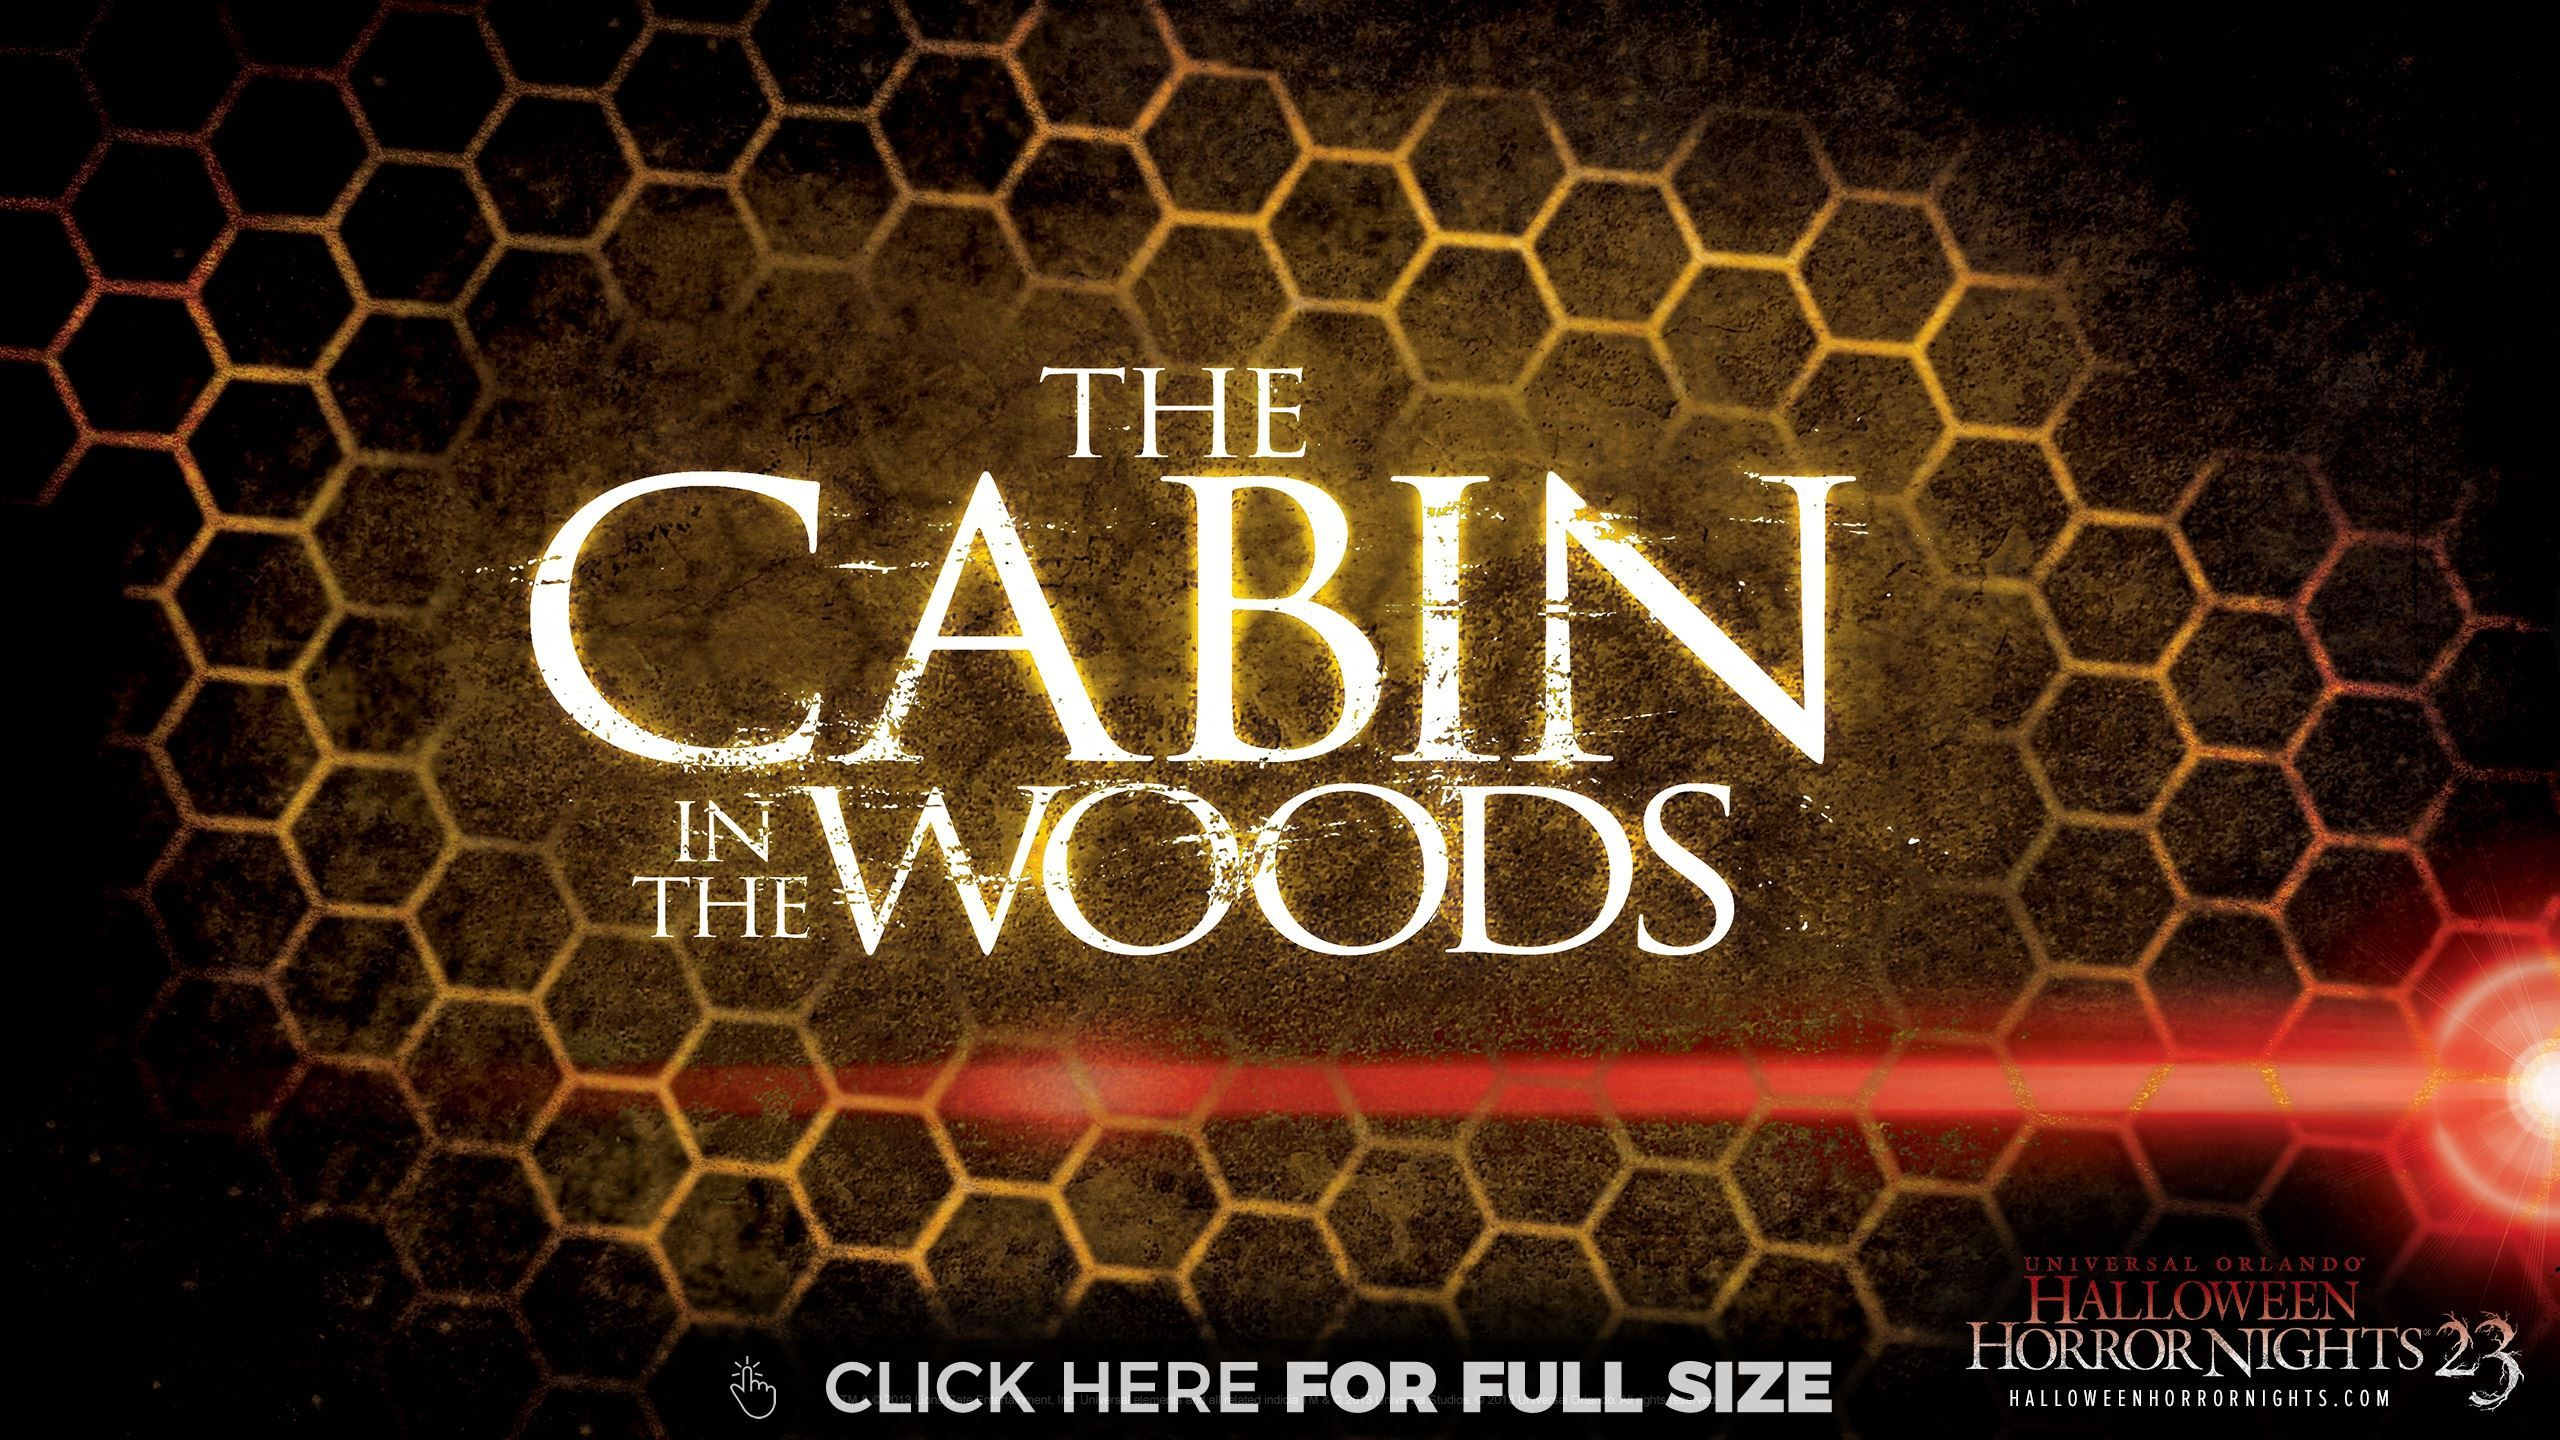 Cabin In The Woods Halloween Horror Nights Wallpaper Halloween Horror Nights 4k Wallpaper For Mobile Cabins In The Woods